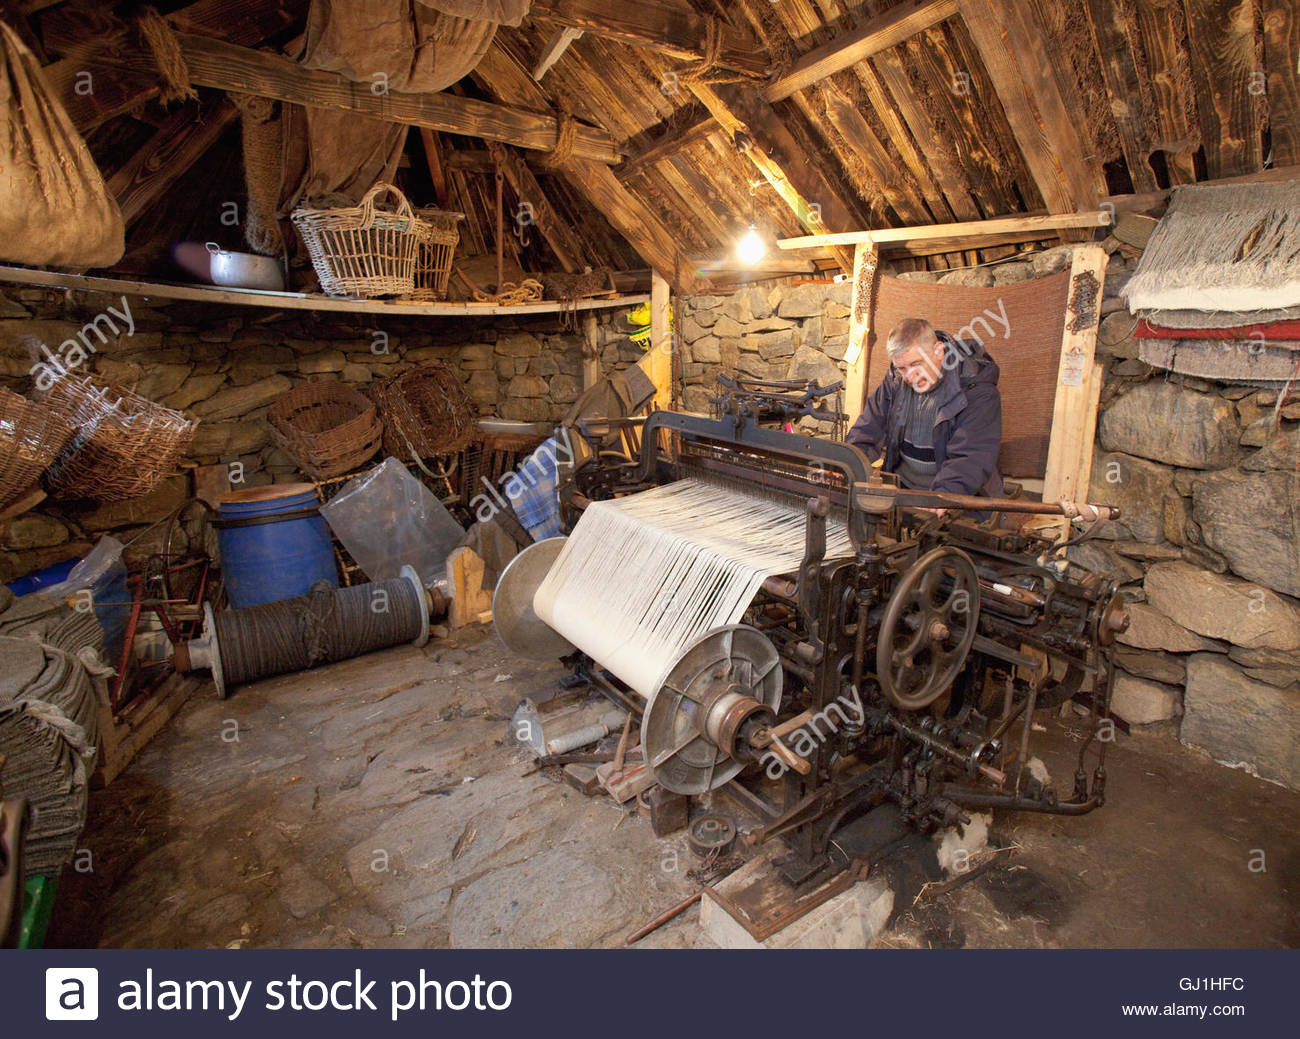 A weaver demonstrates a loom at the Gearrannan Blackhouse Village, Carloway, Isle of Lewis, Outer Hebrides. Scotland. - Stock Image